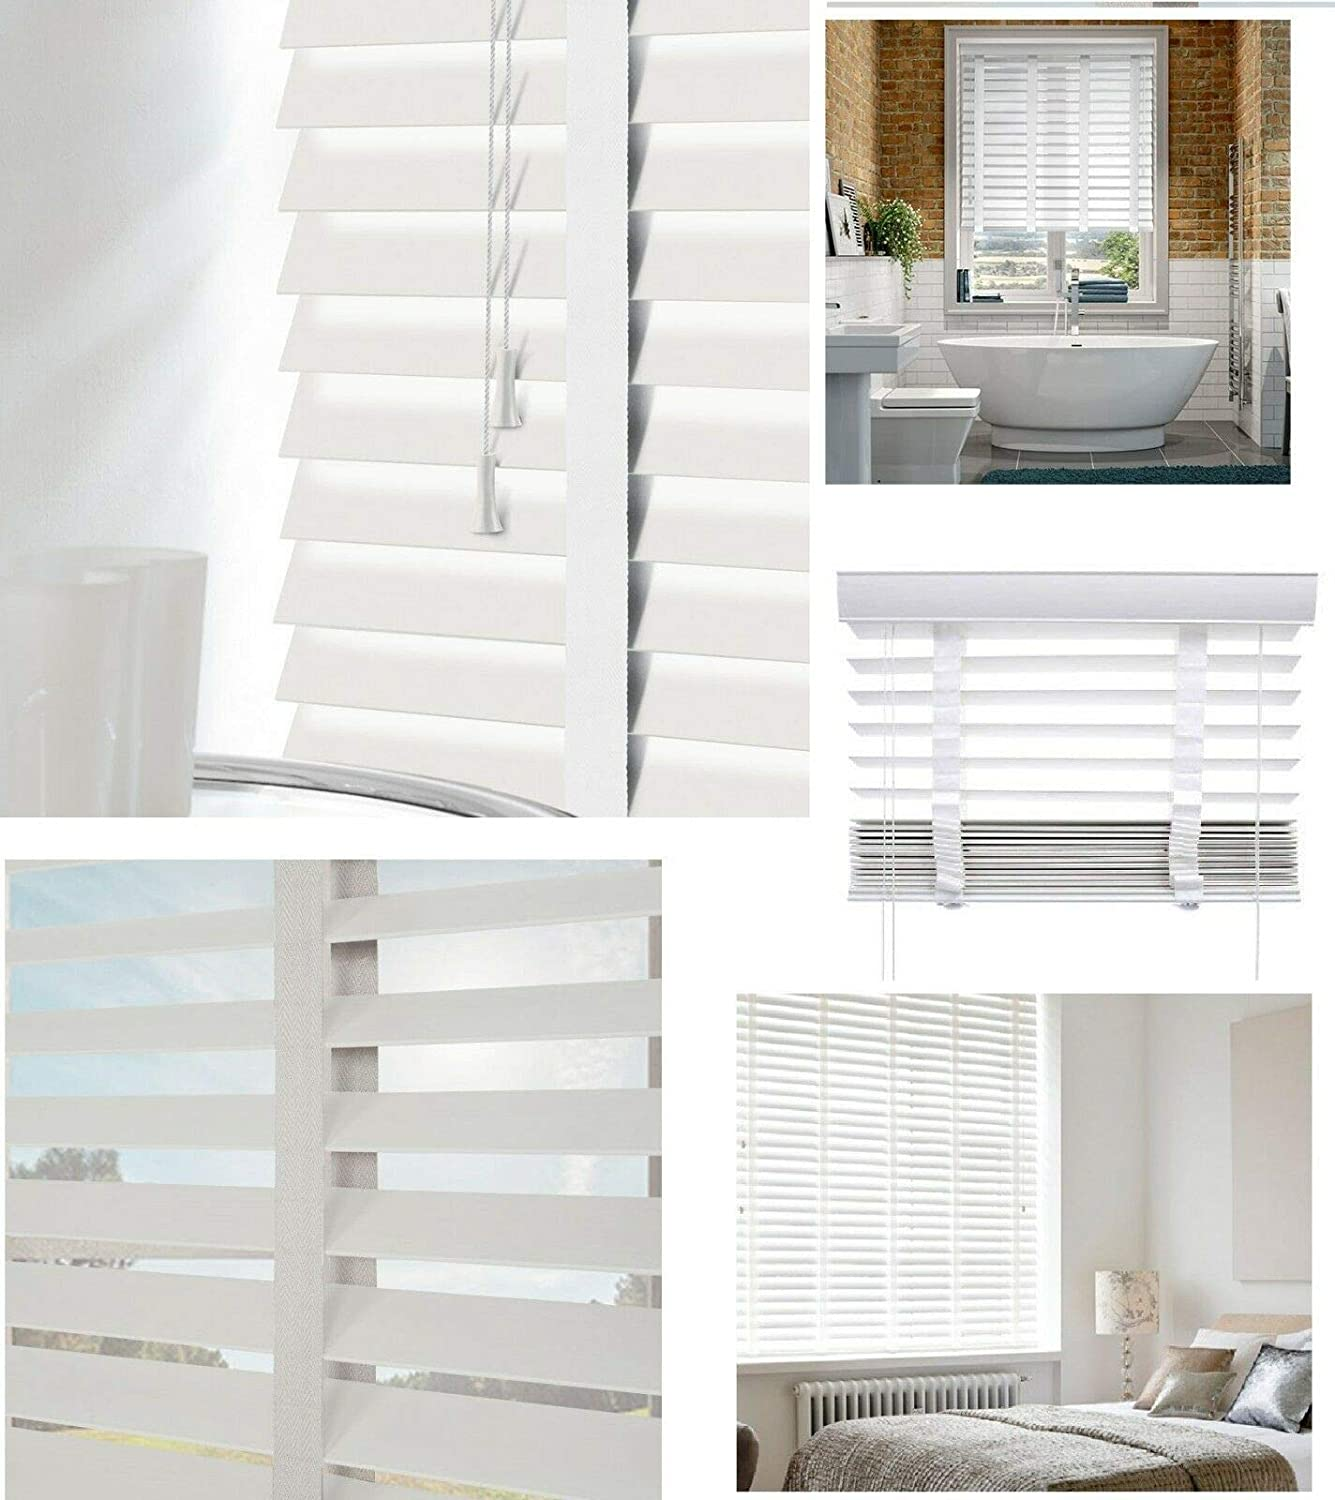 Optimal Products Faux Wood Wooden Venetian Blinds Blind With Tape 50mm Slats White Fittings Included Easy Fit White 45x150 Cm 18 X60 Amazon Co Uk Kitchen Home